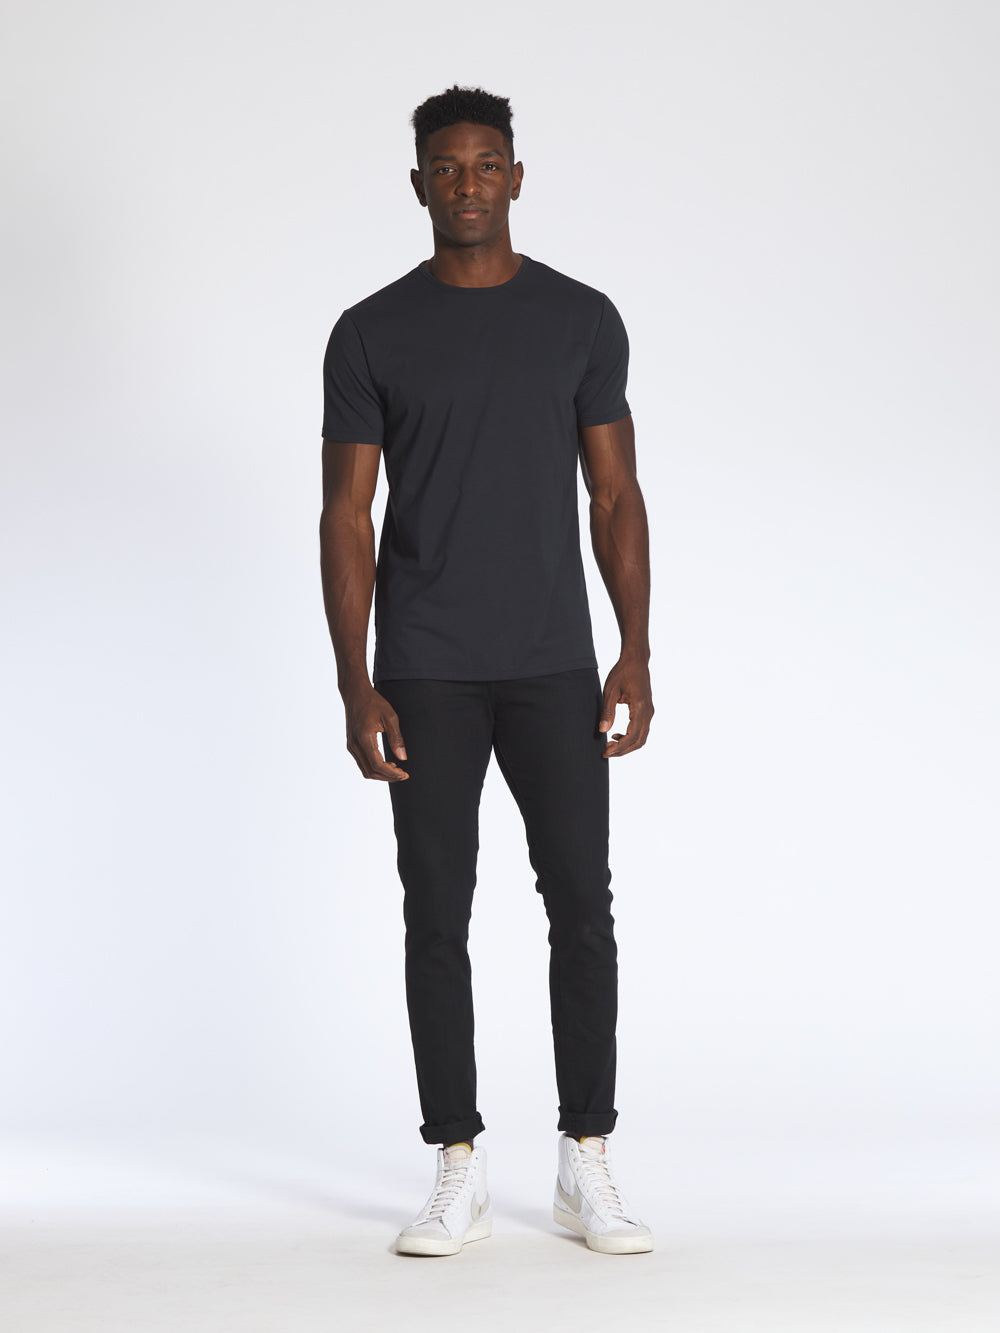 [info]--Jamal is 6'2 and wears a size L